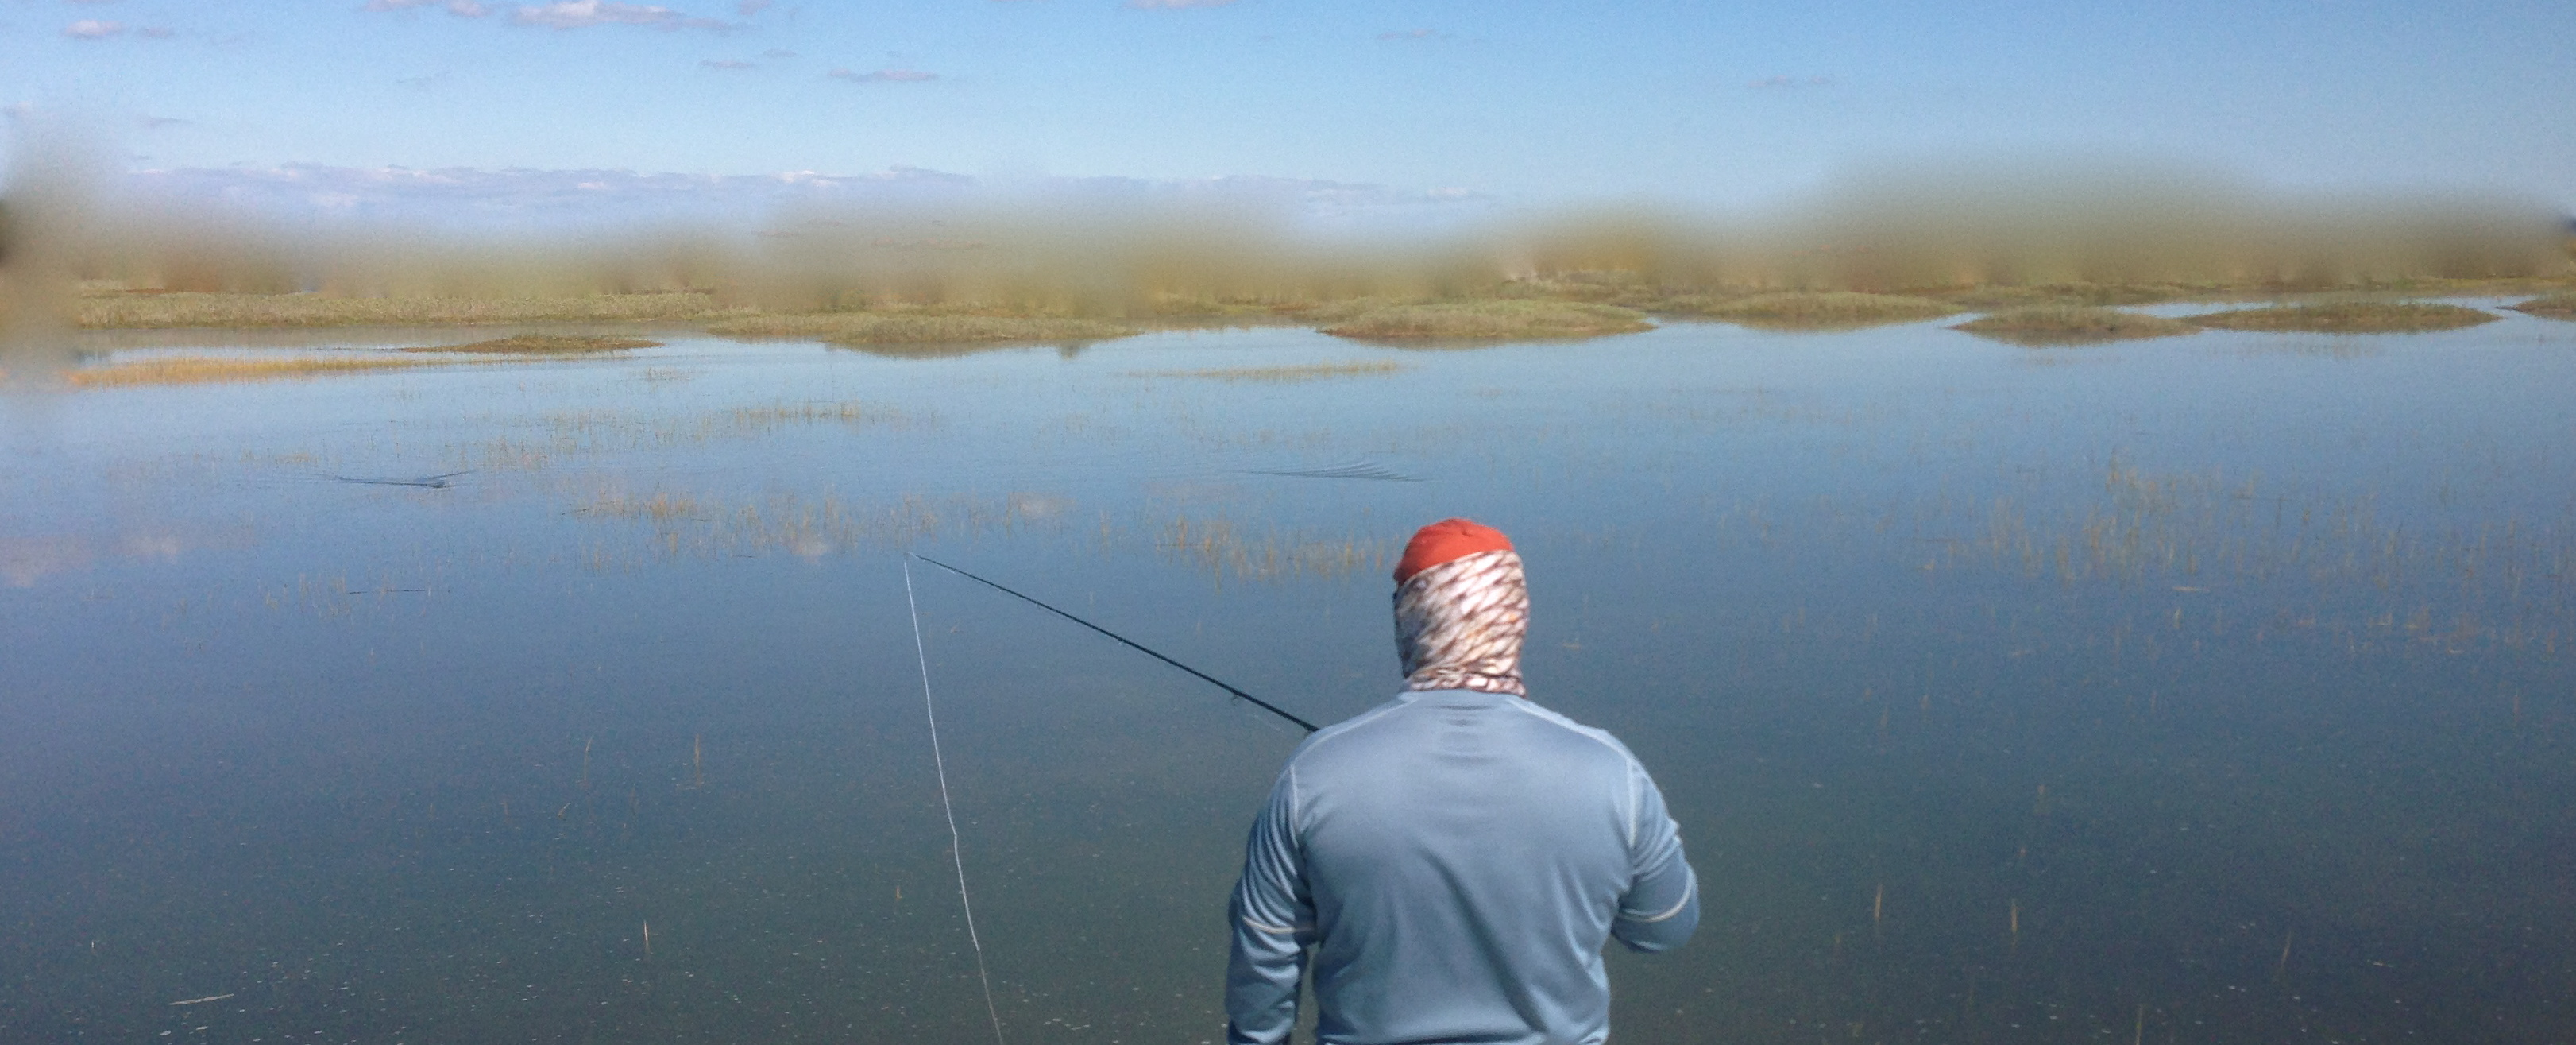 Saltwater Fly Fishing Wallpaper Fly fishing for redfish in the 3243x1315